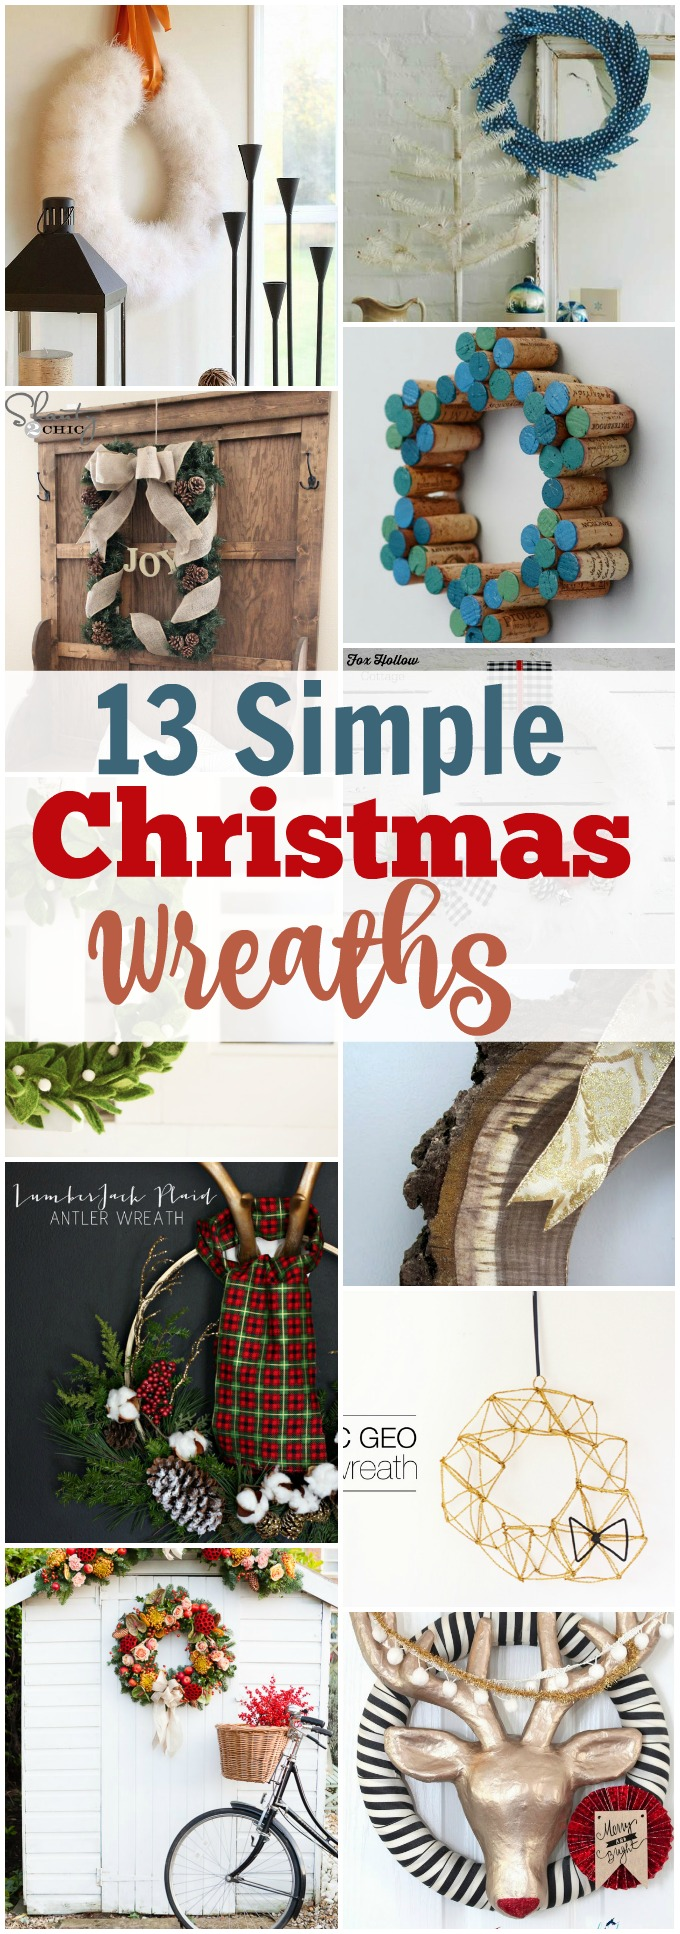 I want to make a wreath but don't want it to be hard! This list of 13 Simple Christmas Wreaths looks like it will be the perfect thing for me, pinning!